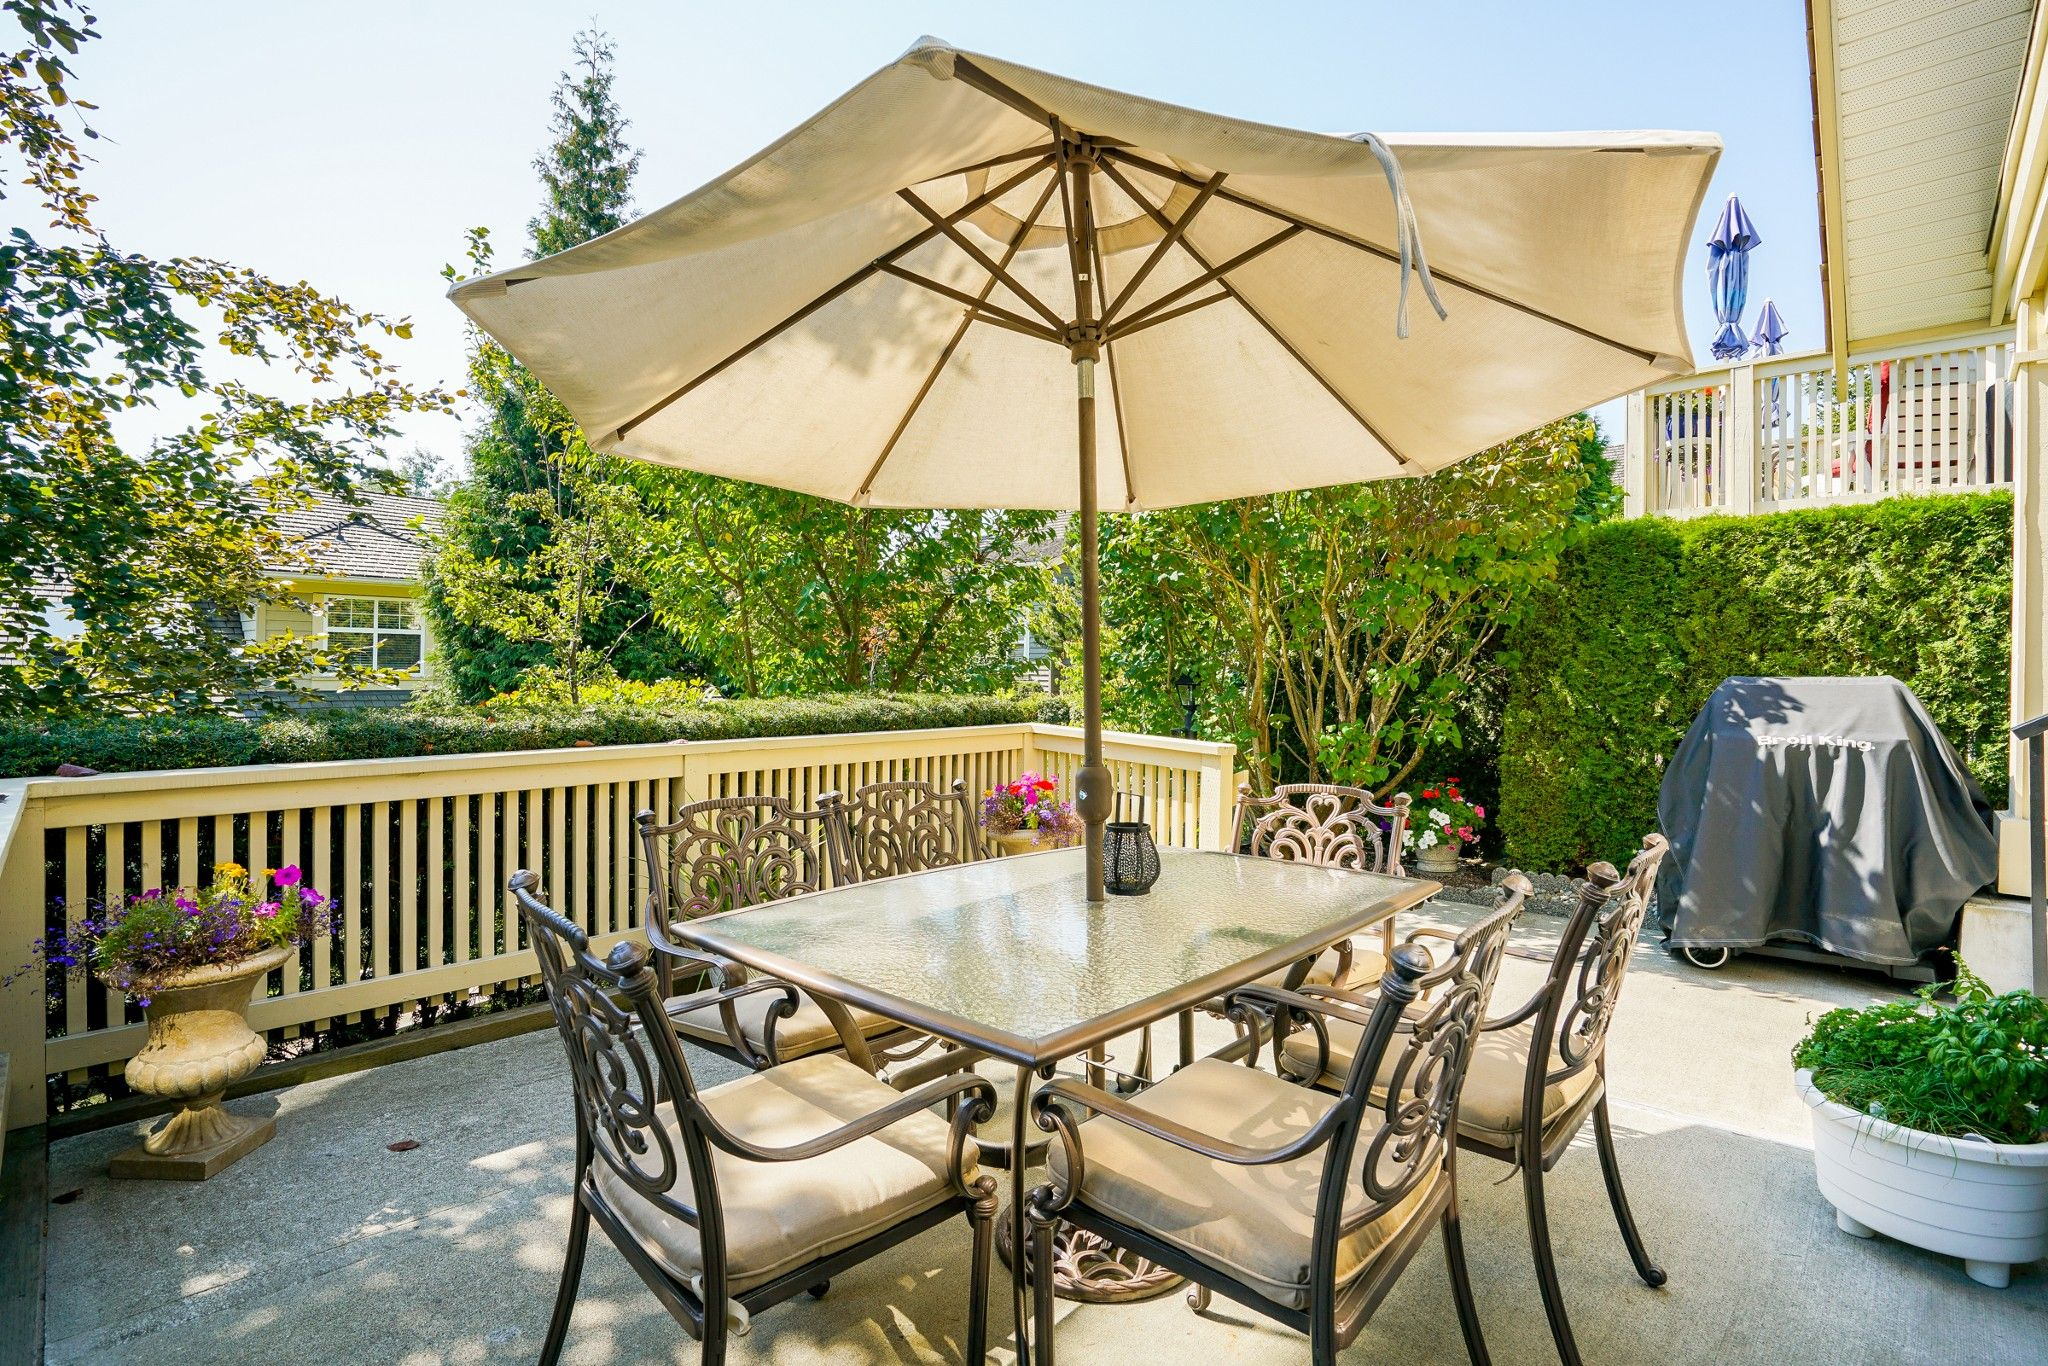 """Main Photo: 41 15450 ROSEMARY HEIGHTS Crescent in Surrey: Morgan Creek Townhouse for sale in """"CARRINGTON"""" (South Surrey White Rock)  : MLS®# R2301831"""